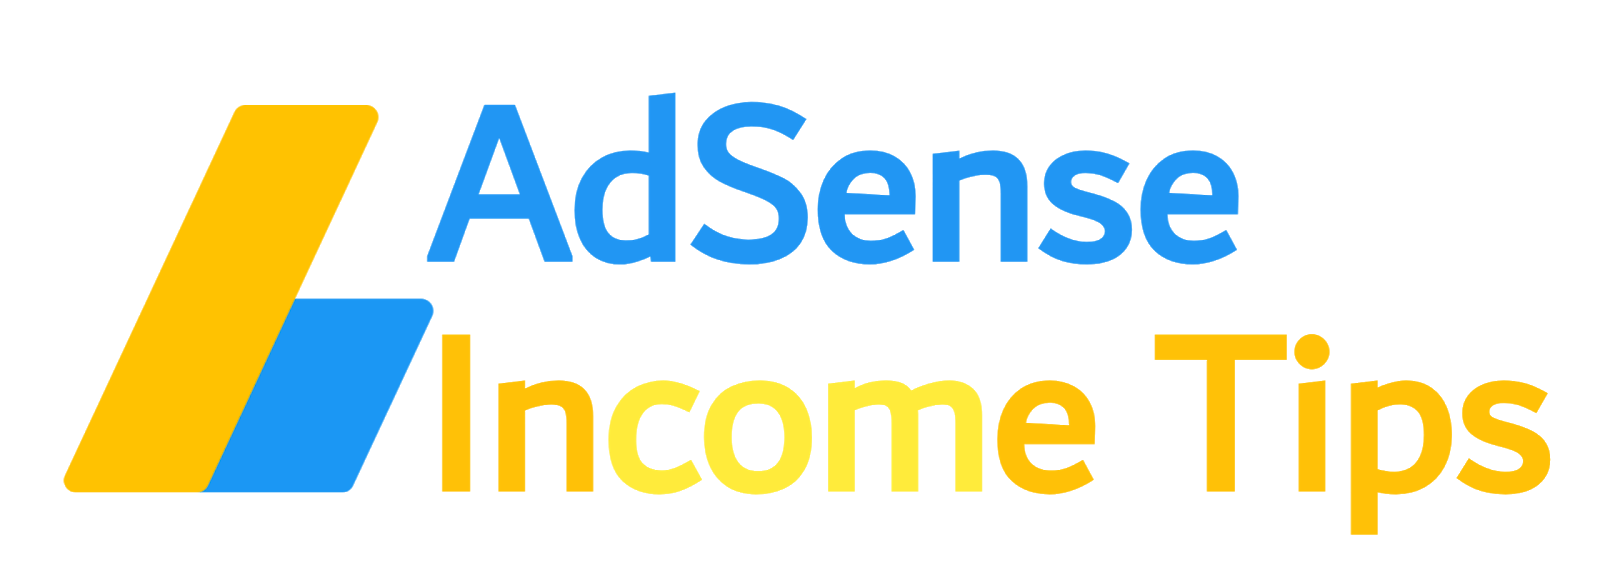 Adsense Income Tips